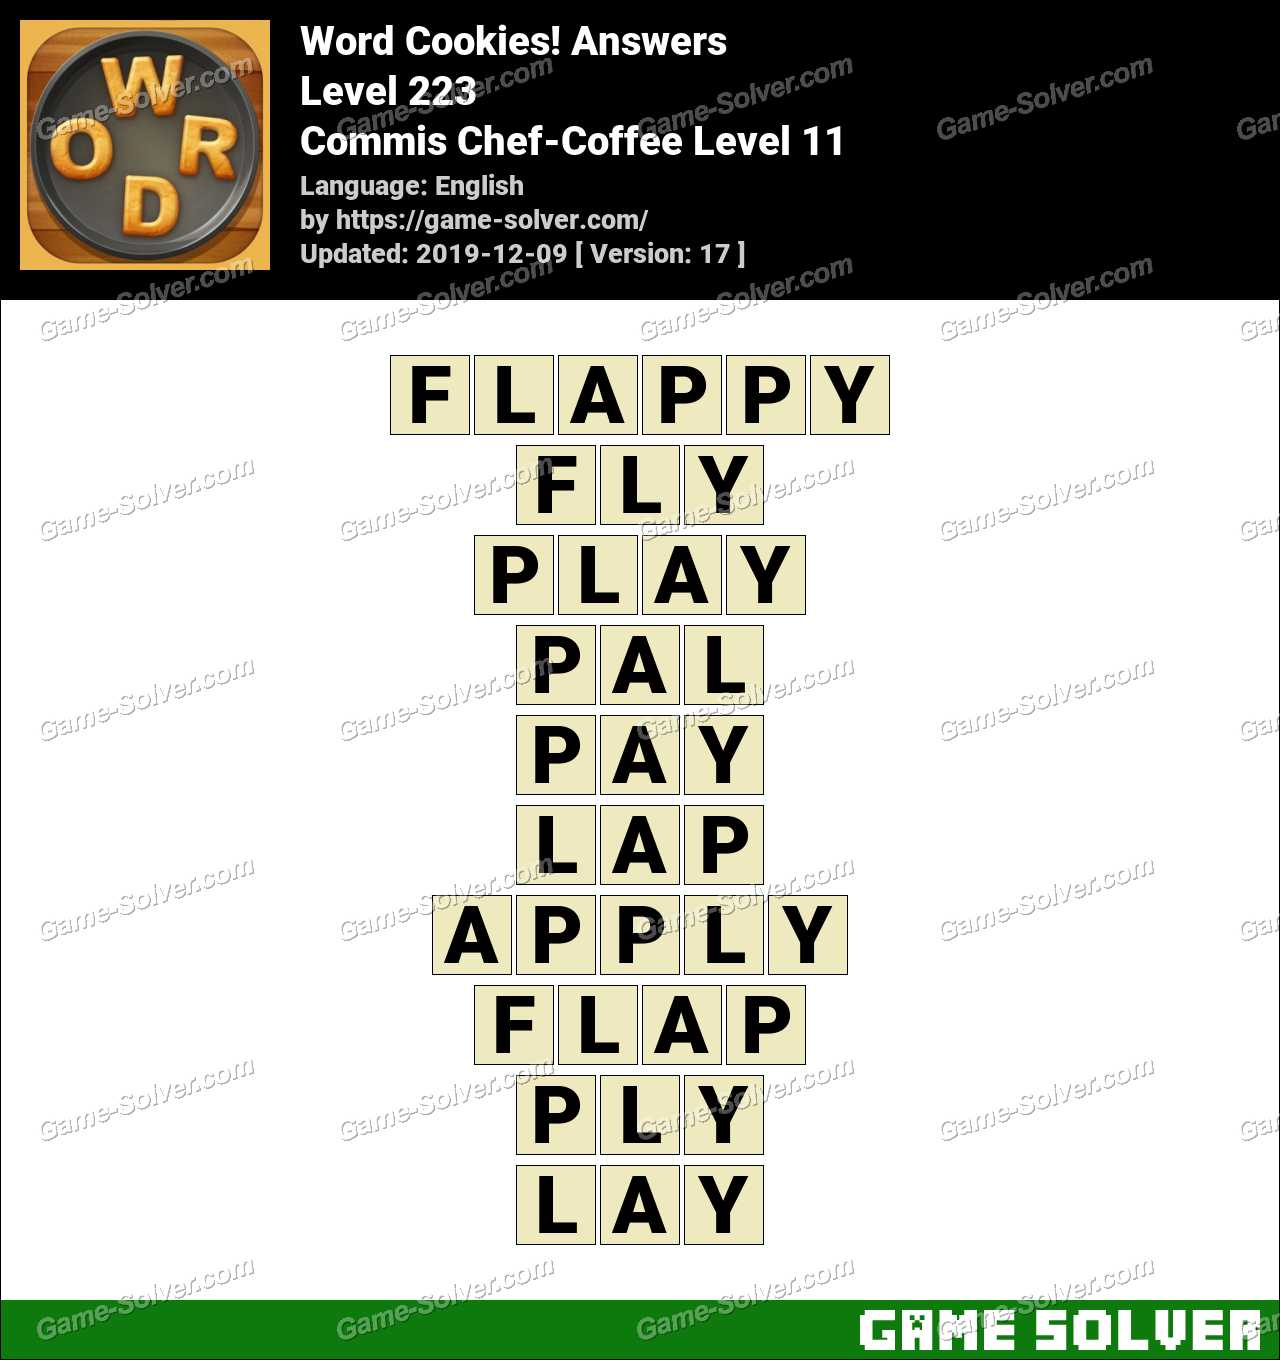 Word Cookies Commis Chef-Coffee Level 11 Answers